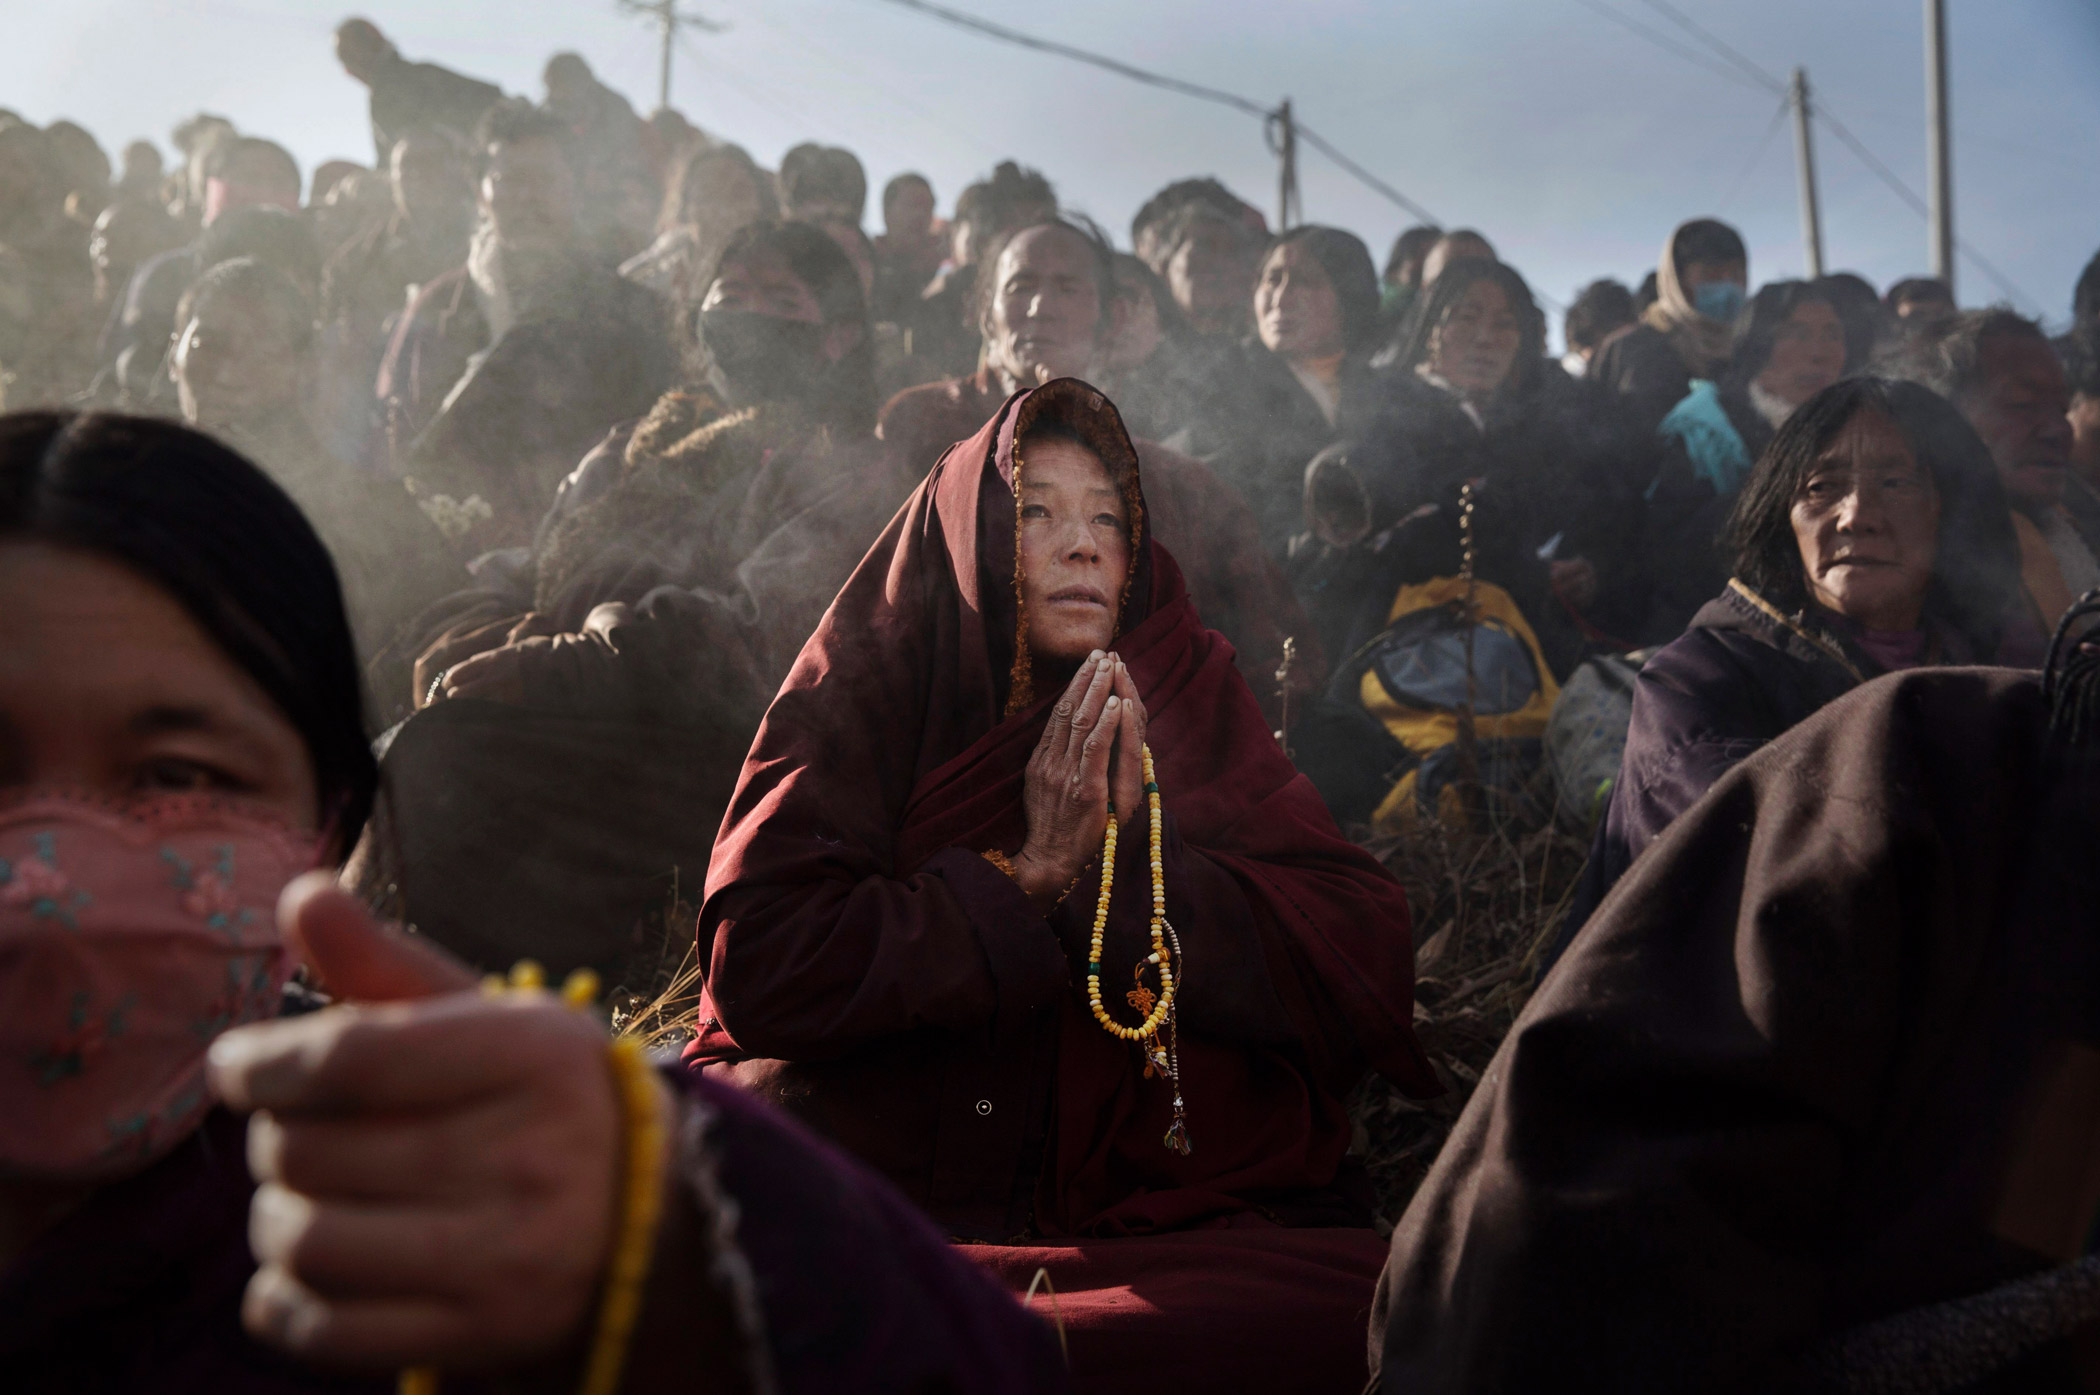 People pray on a hillside during a morning chanting session.